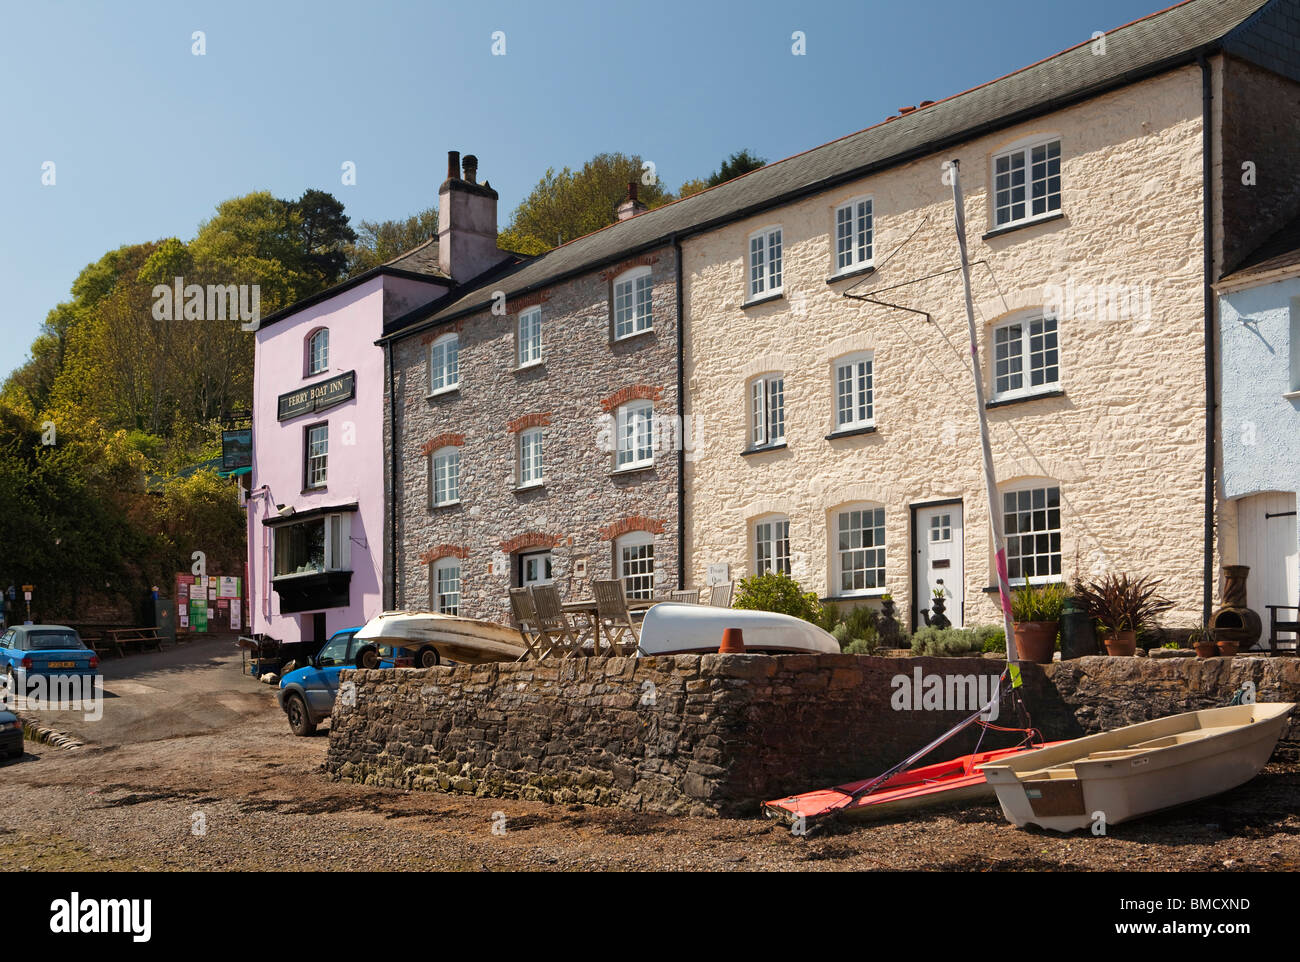 UK, England, Devon, Dittisham, Ferry Boat Inn colourfully painted riverside, houses on the Quay - Stock Image